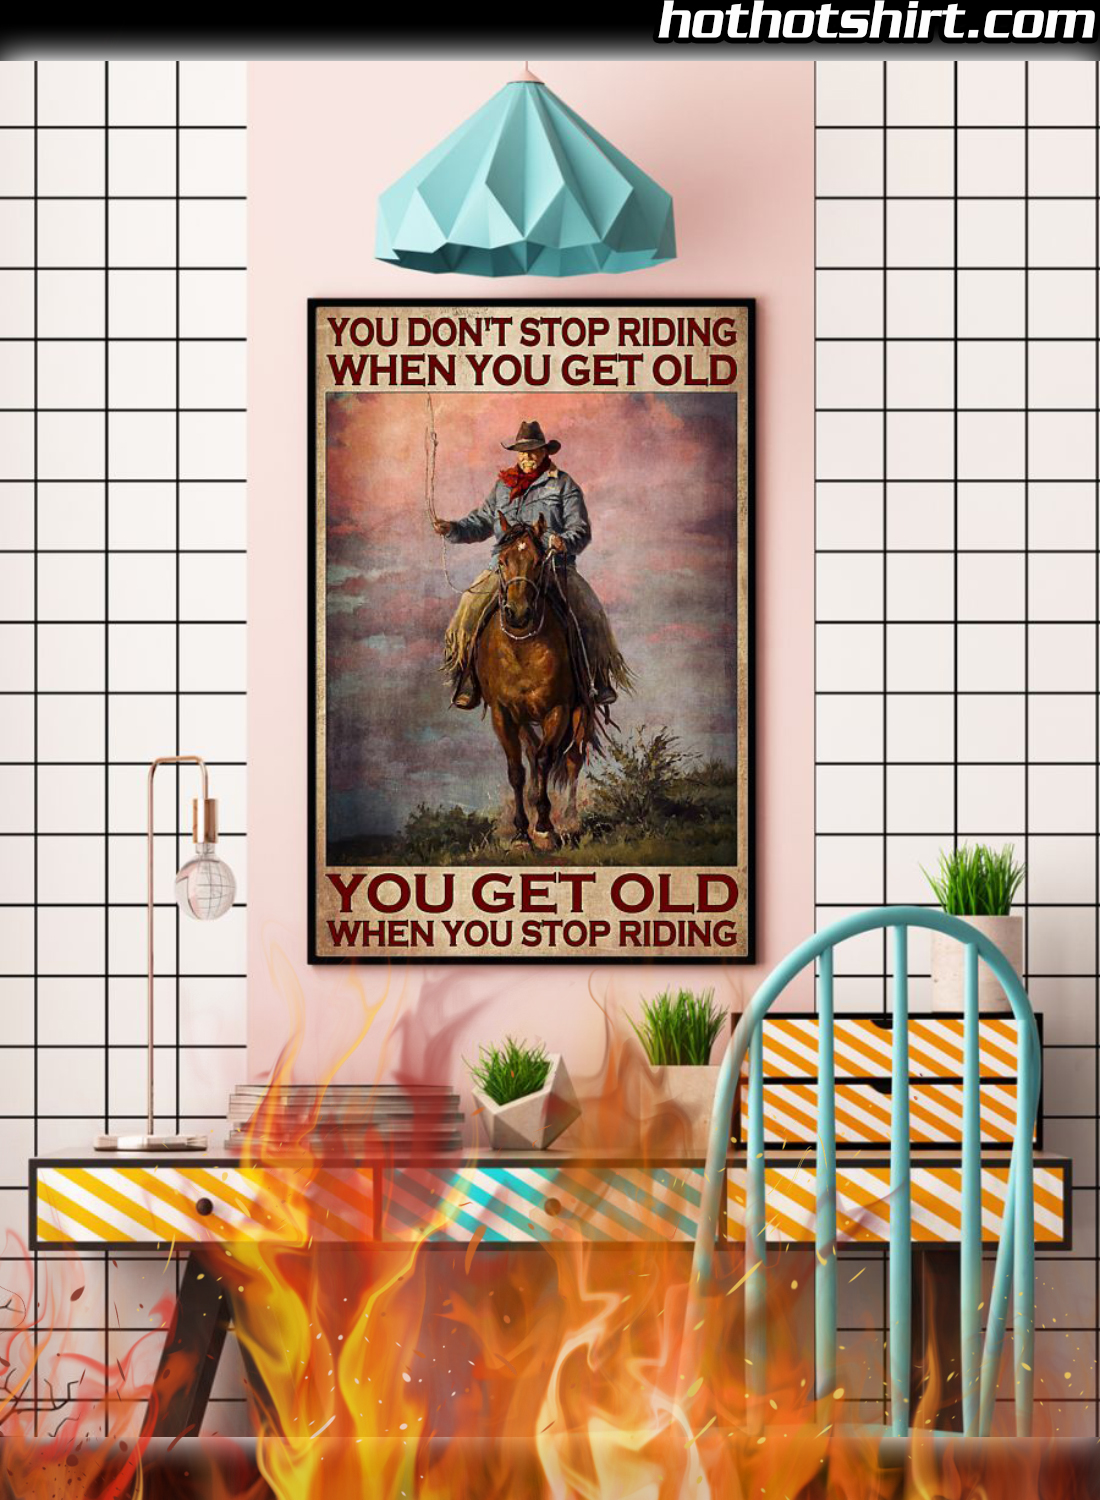 Rodeo You Don't Stop Riding When You Get Old You Get Old When You Stop Riding Poster 3